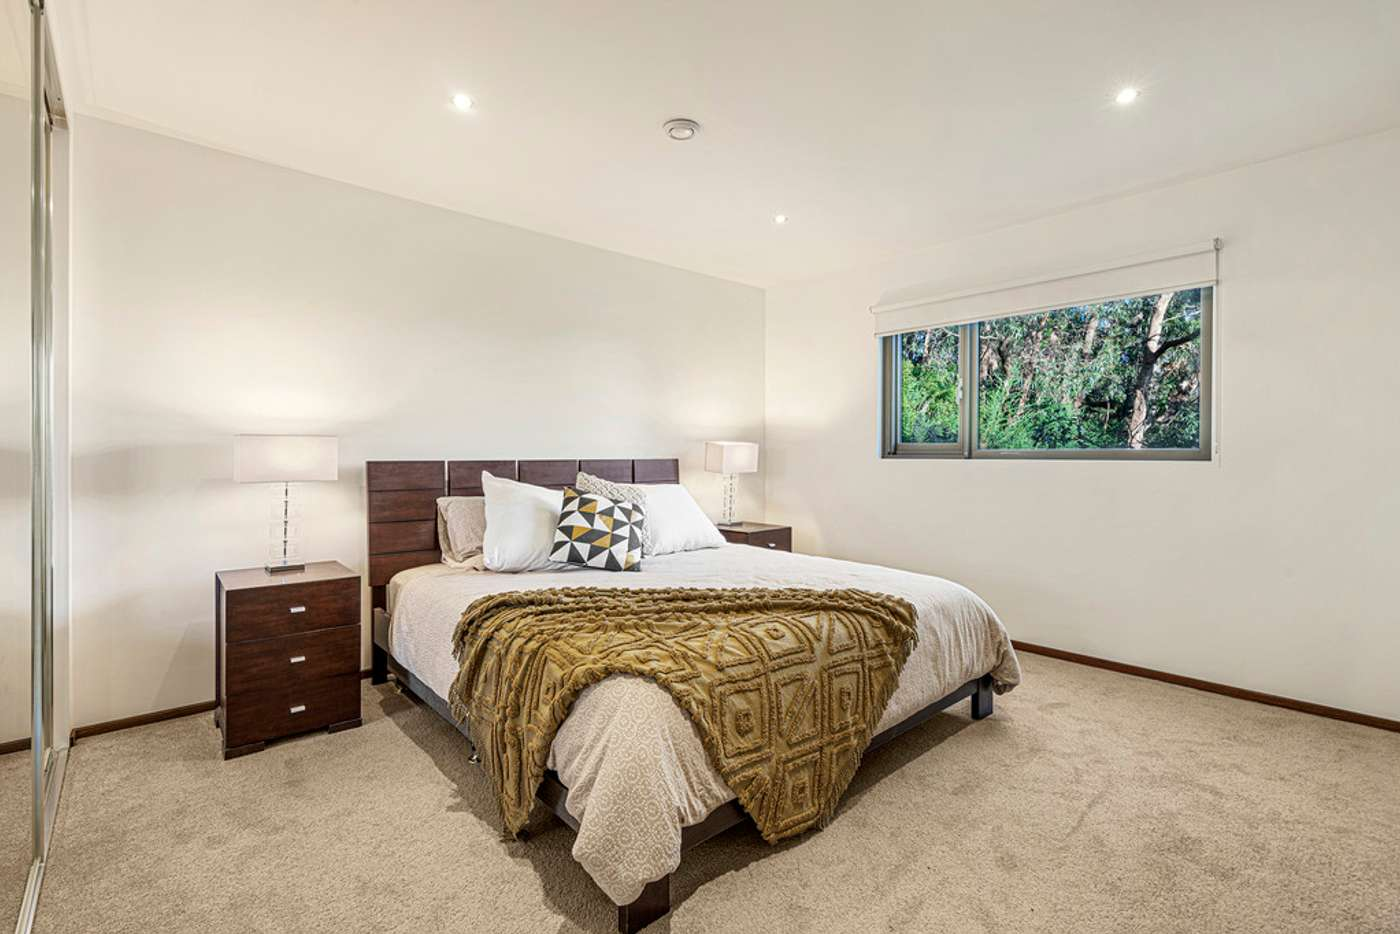 Seventh view of Homely house listing, 8 Olivette Avenue, Upper Ferntree Gully VIC 3156